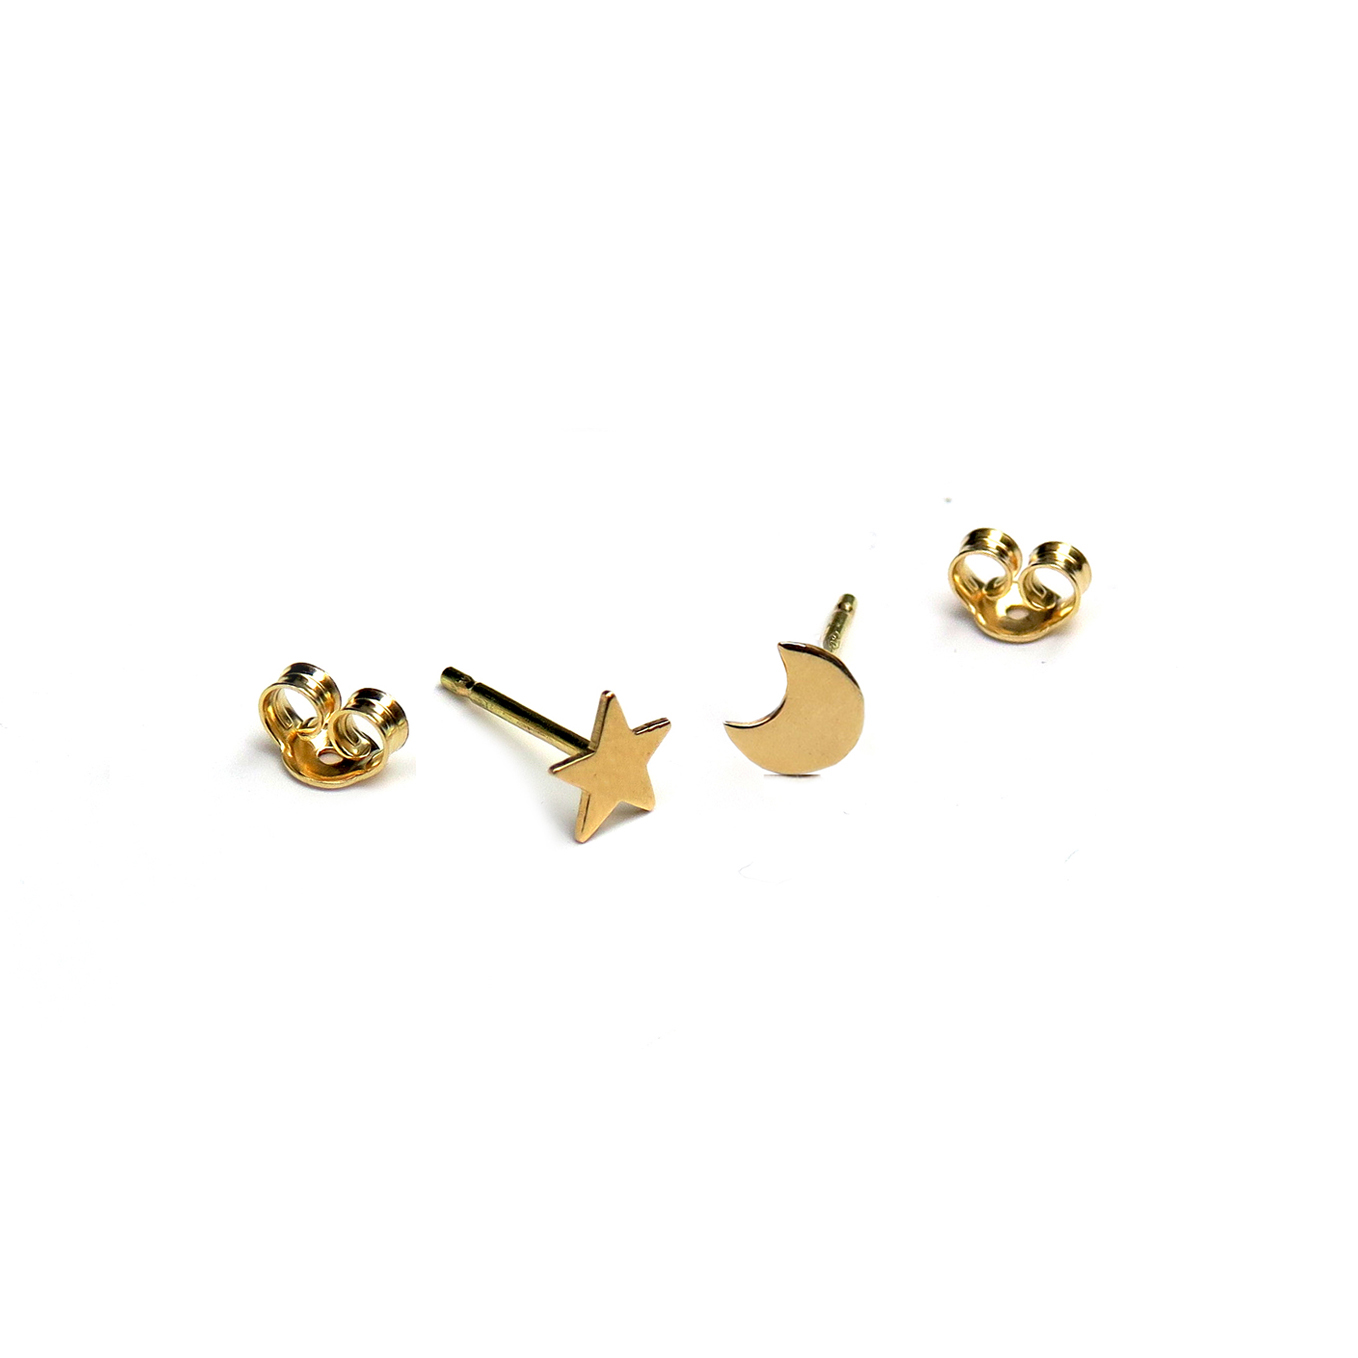 Micro Star And Half Moon Stud Earrings In 18ct Gold